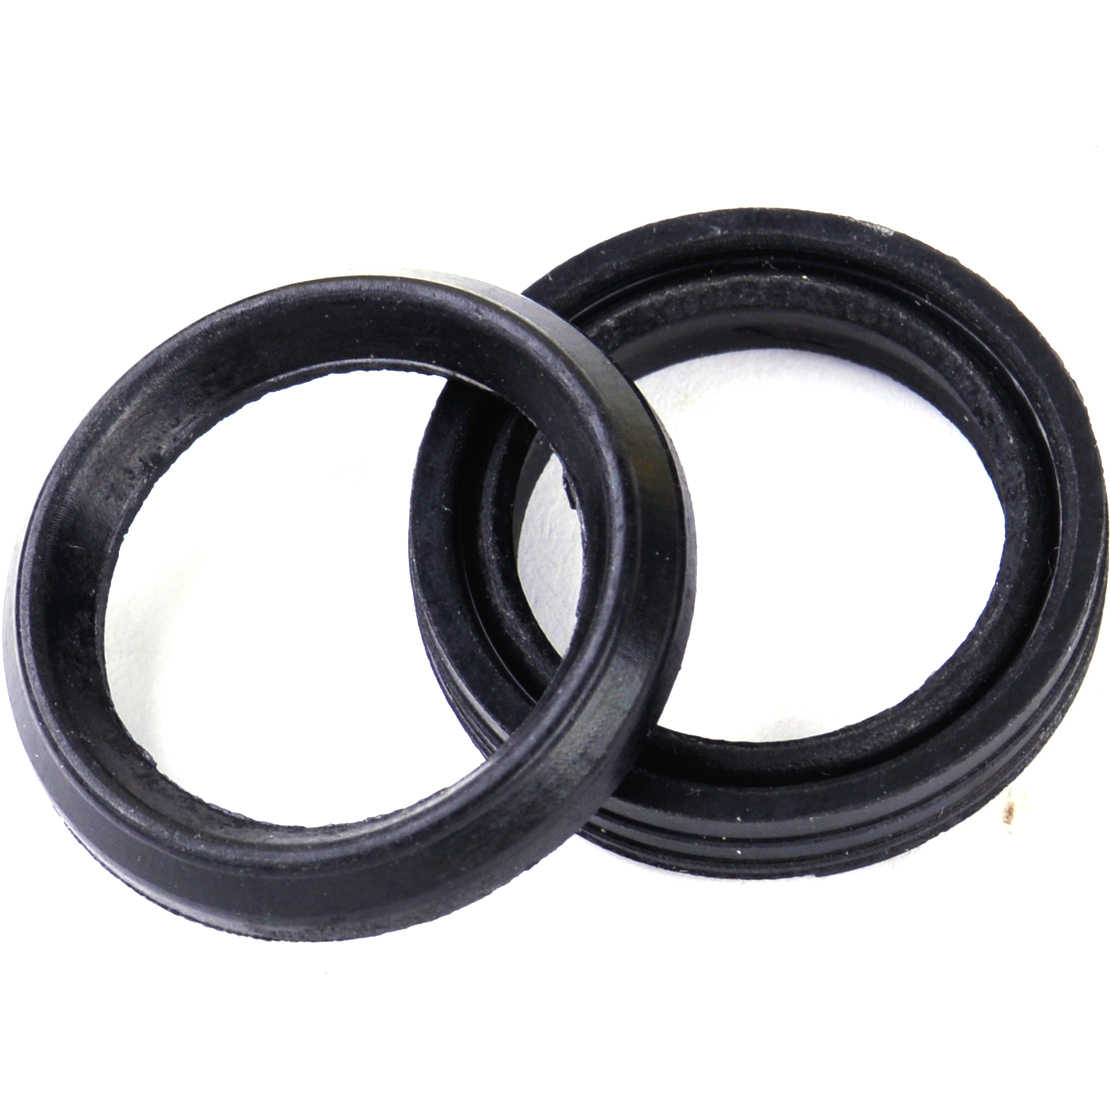 LETAOSK Oil Seal Water Seal Repair Bag Replacement Fit for High Pressure  Washer Pump 280 380